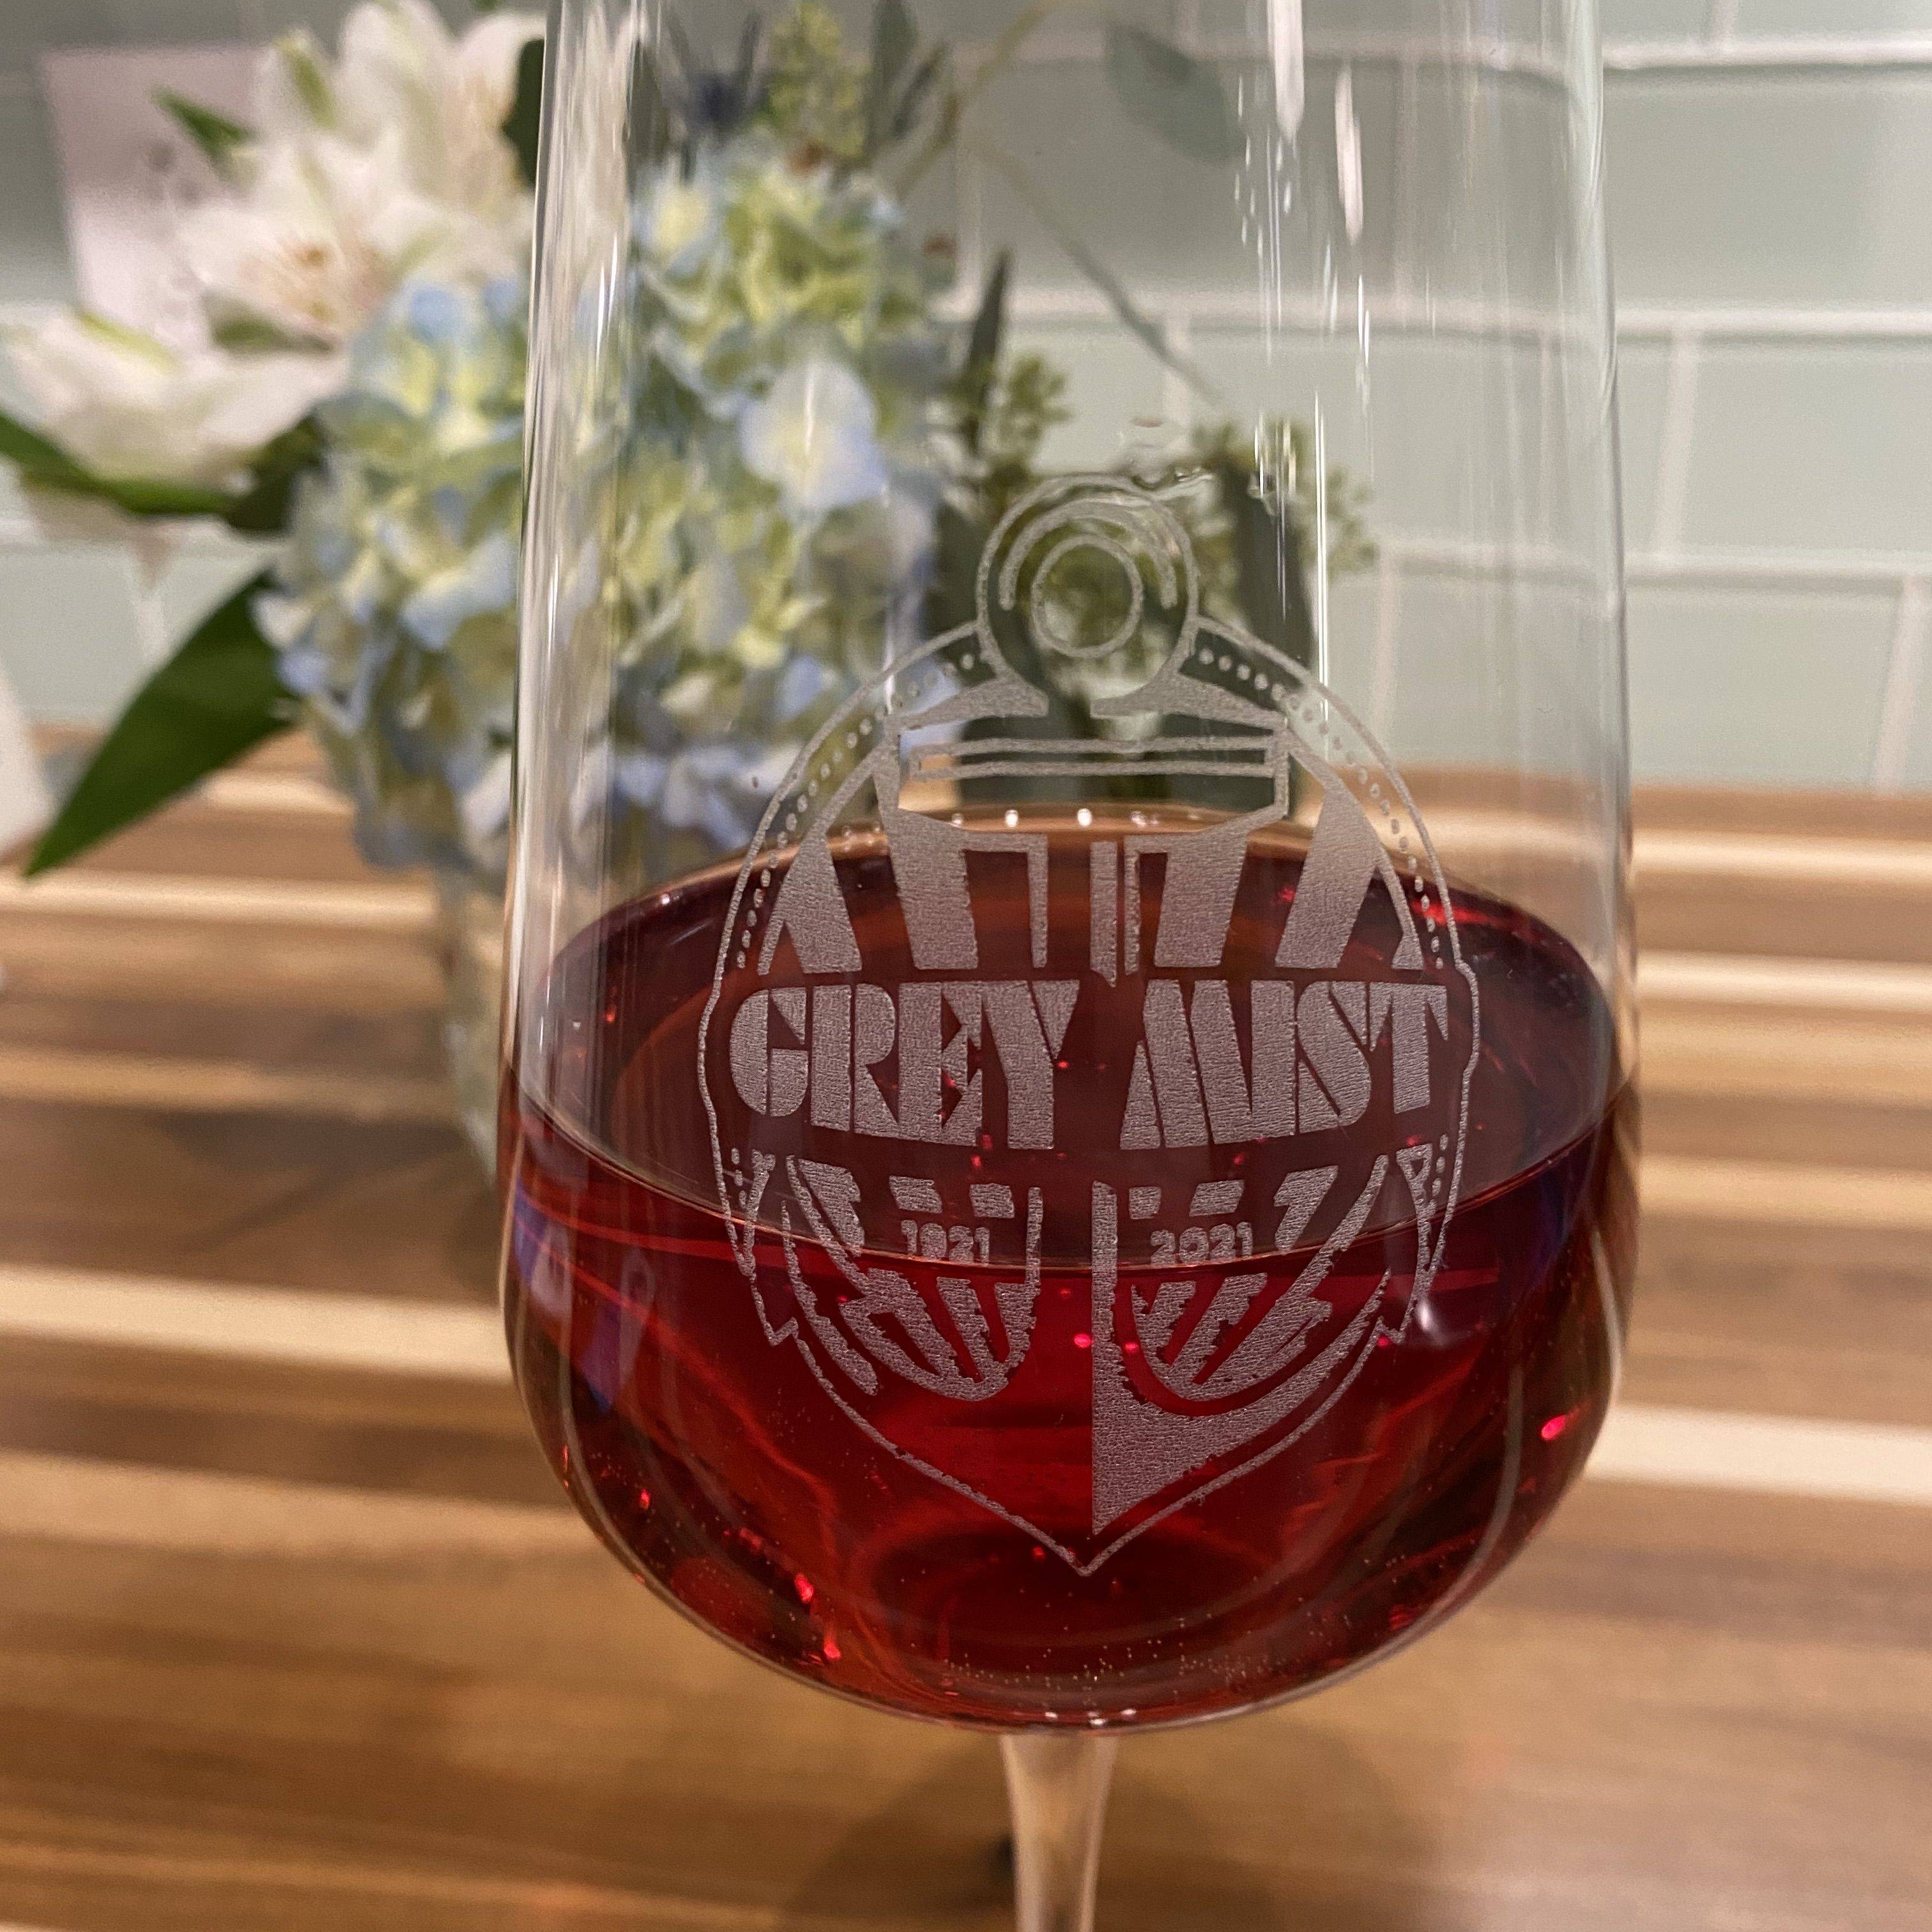 Whether You Re On Land Or At Sea You Can Commemorate And Celebrate Just About Anything With Qge Classy Fancy Elegant In 2020 Wine Glass Stemless Wine Glass Wine